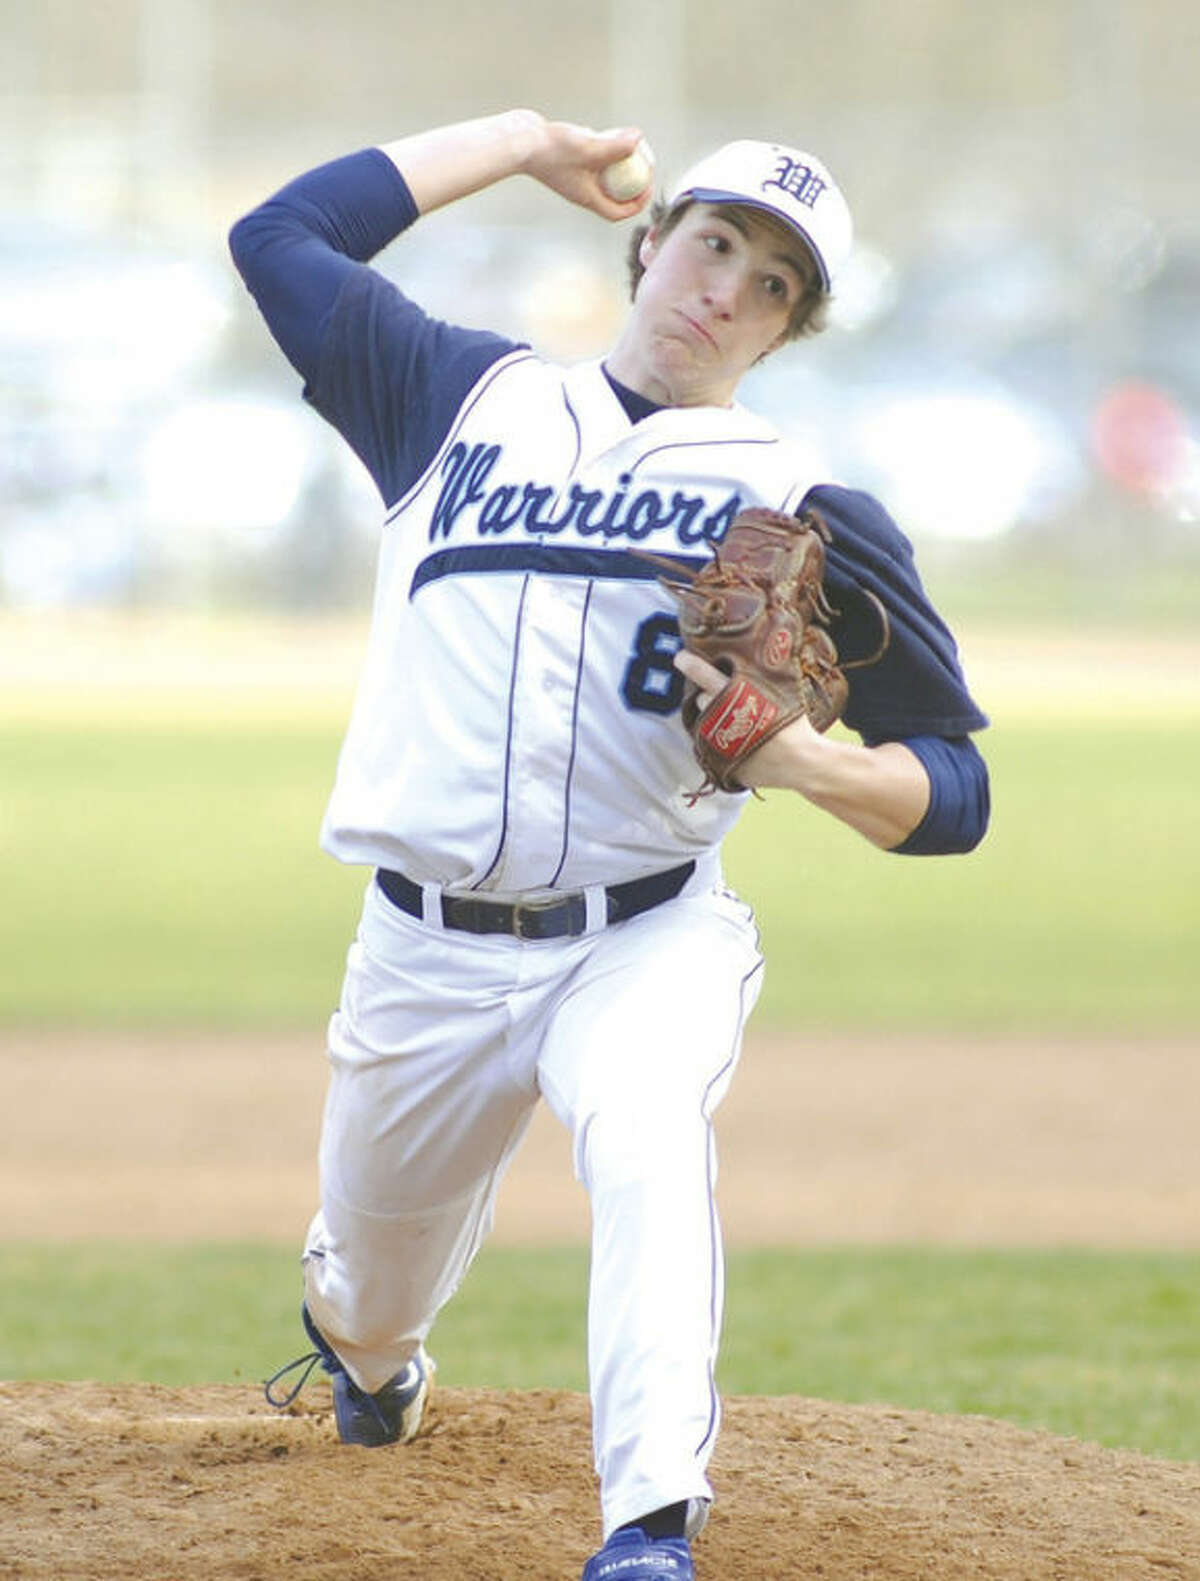 Hour photo/John Nash Ryan Reuther of Wilton fires a pitch to the plate while tossing a no-hitter against Weston on Thursday afternoon. Reuther beat Weston, 5-0.